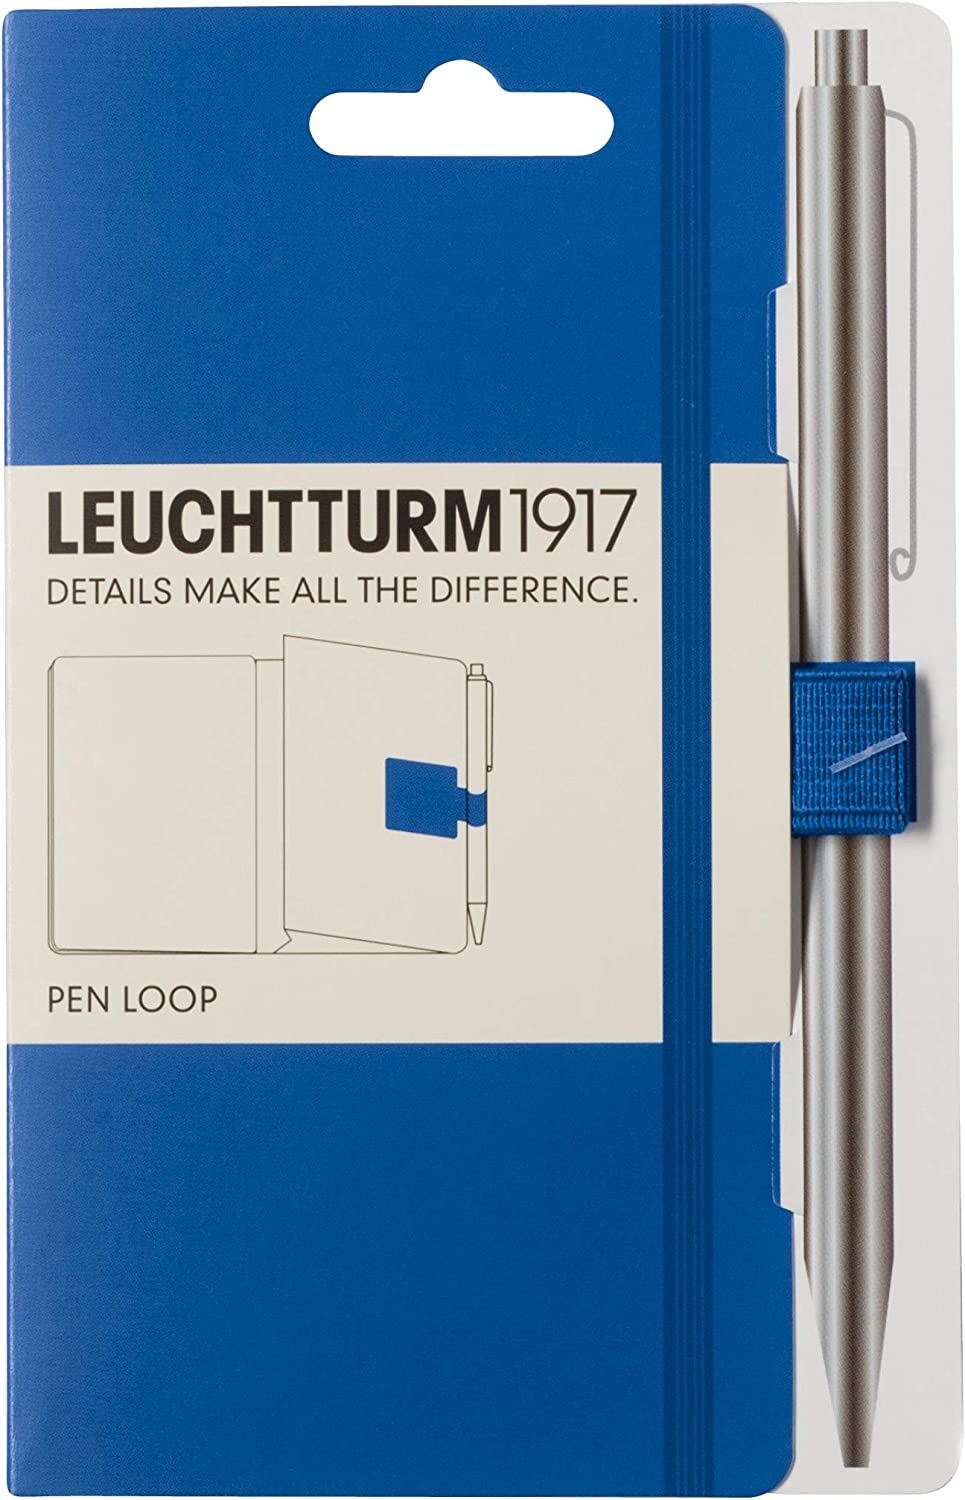 Leuchtturm1917 Pen Loop Royal Blue